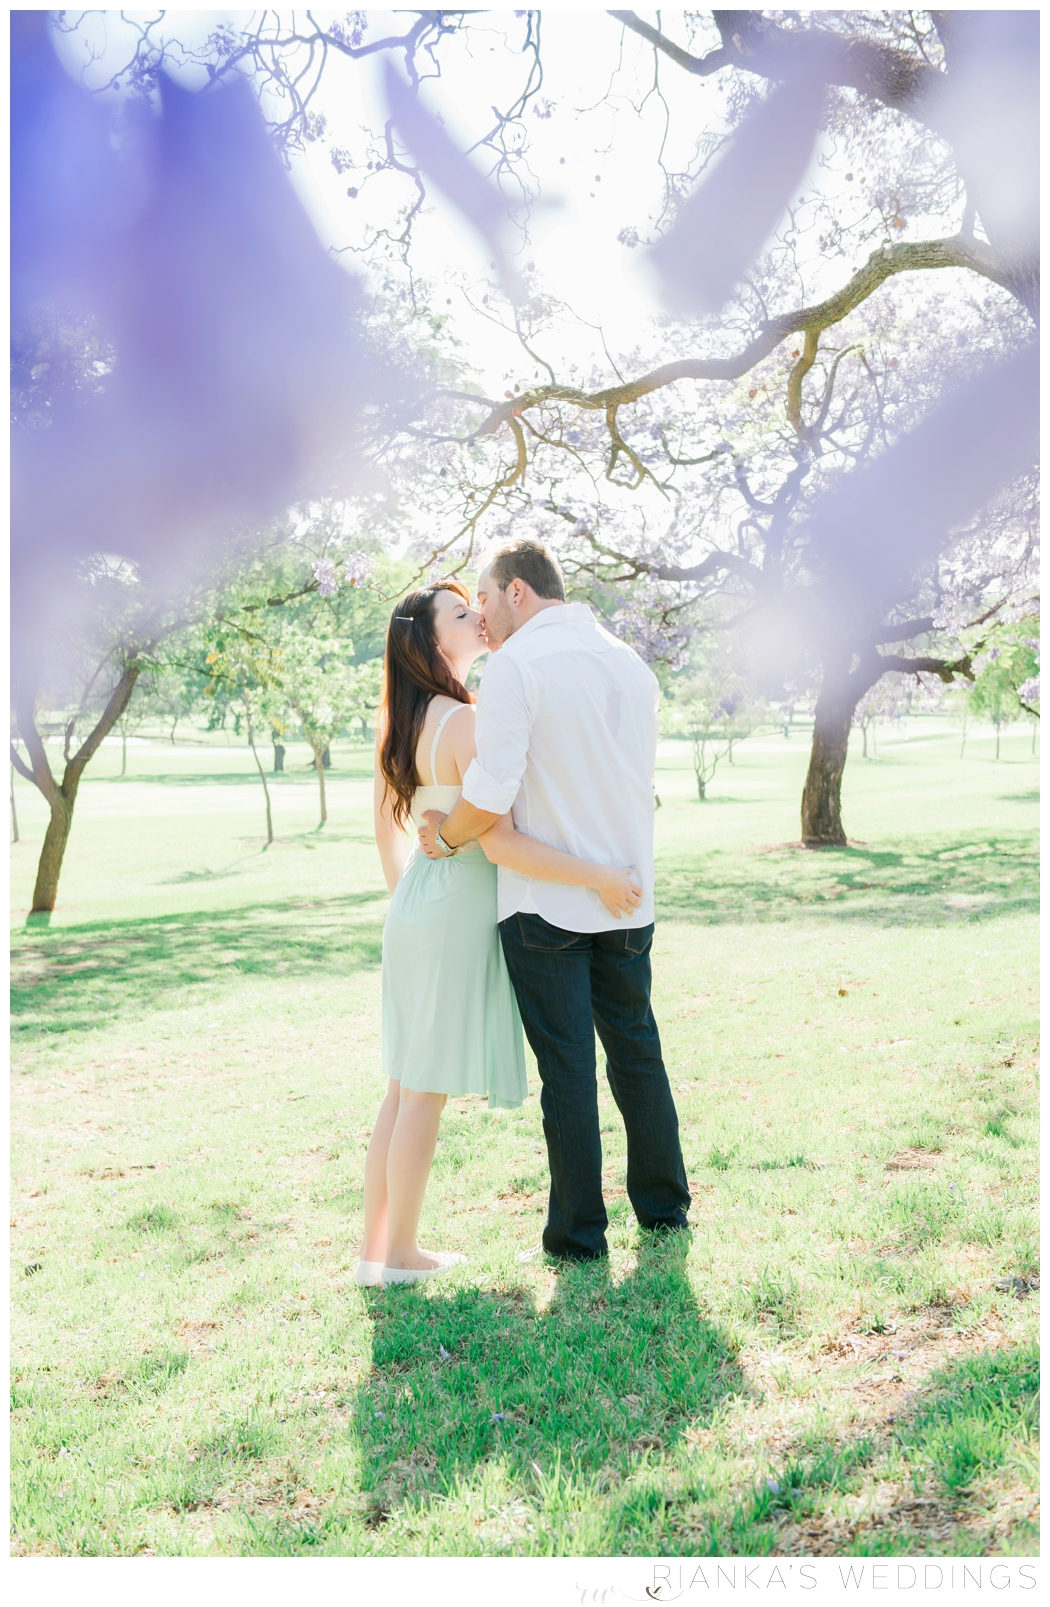 riankas-wedding-photography-pretoria-engagement-shoot-00013